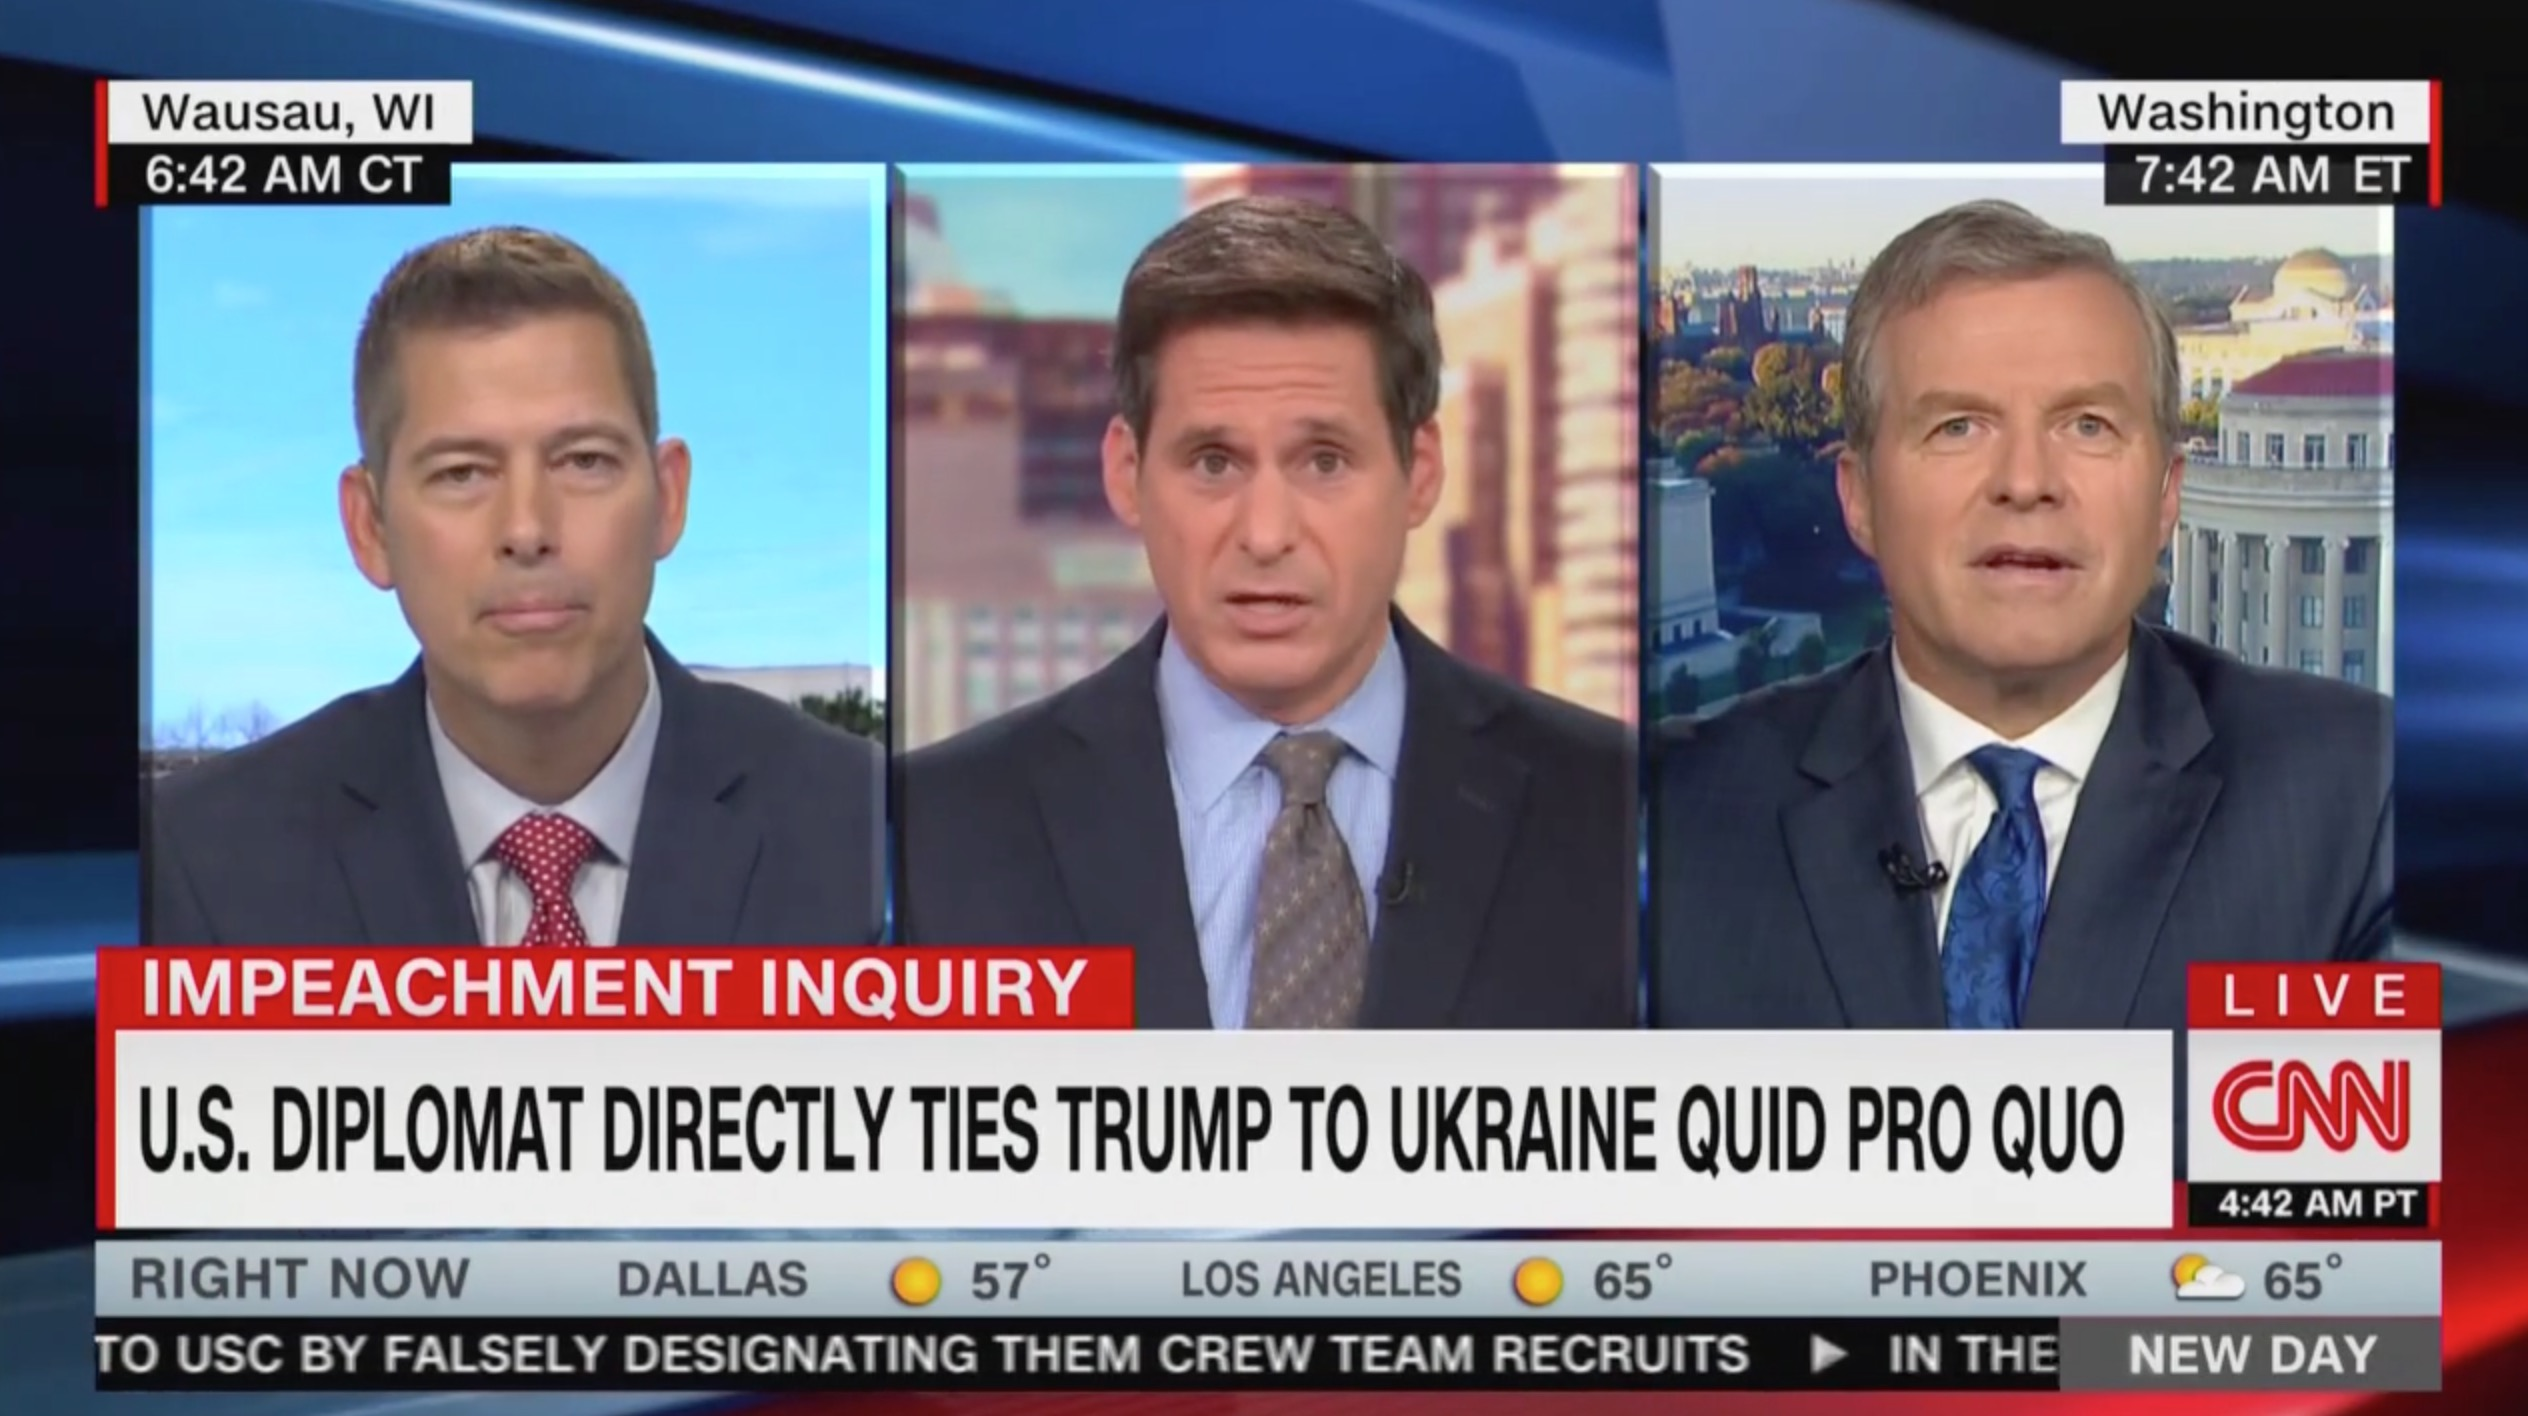 Sean Duffy Gets Repeatedly Owned In Bonkers CNN Segment: 'My Nose Isn't a Heat-Seeking Missile for the President's Backside'